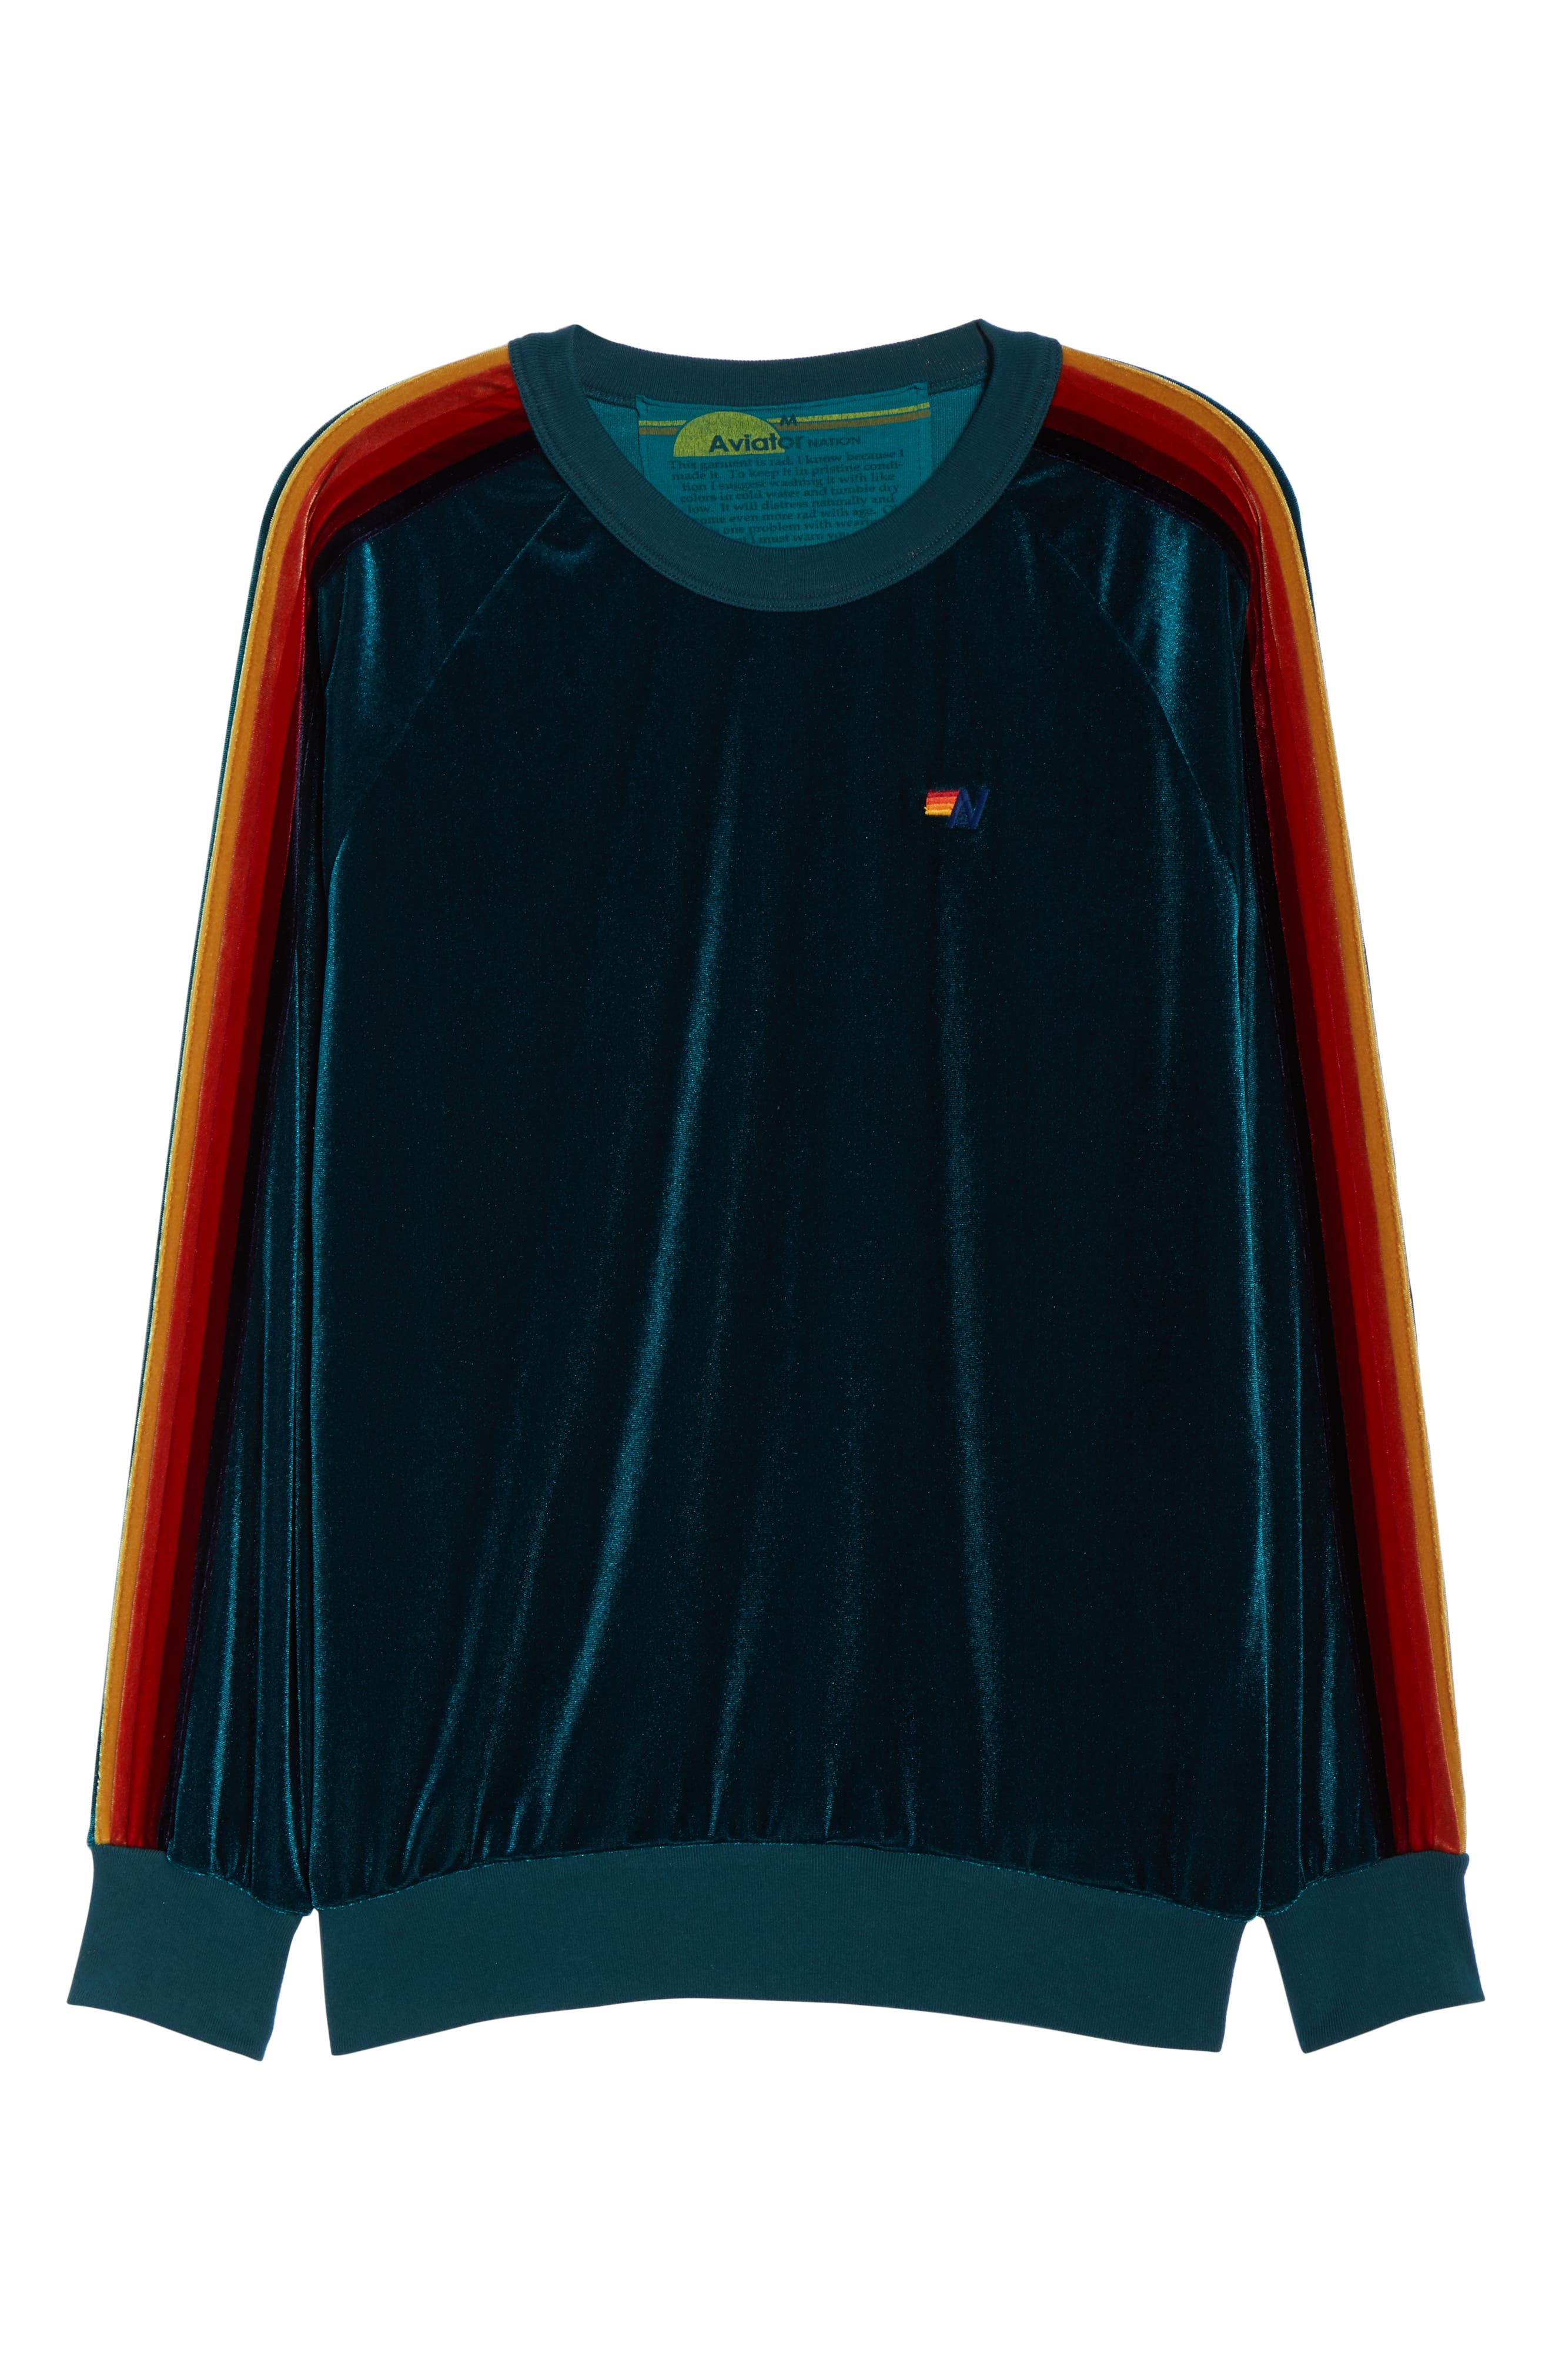 Velvet Crewneck Sweatshirt,                             Alternate thumbnail 6, color,                             300